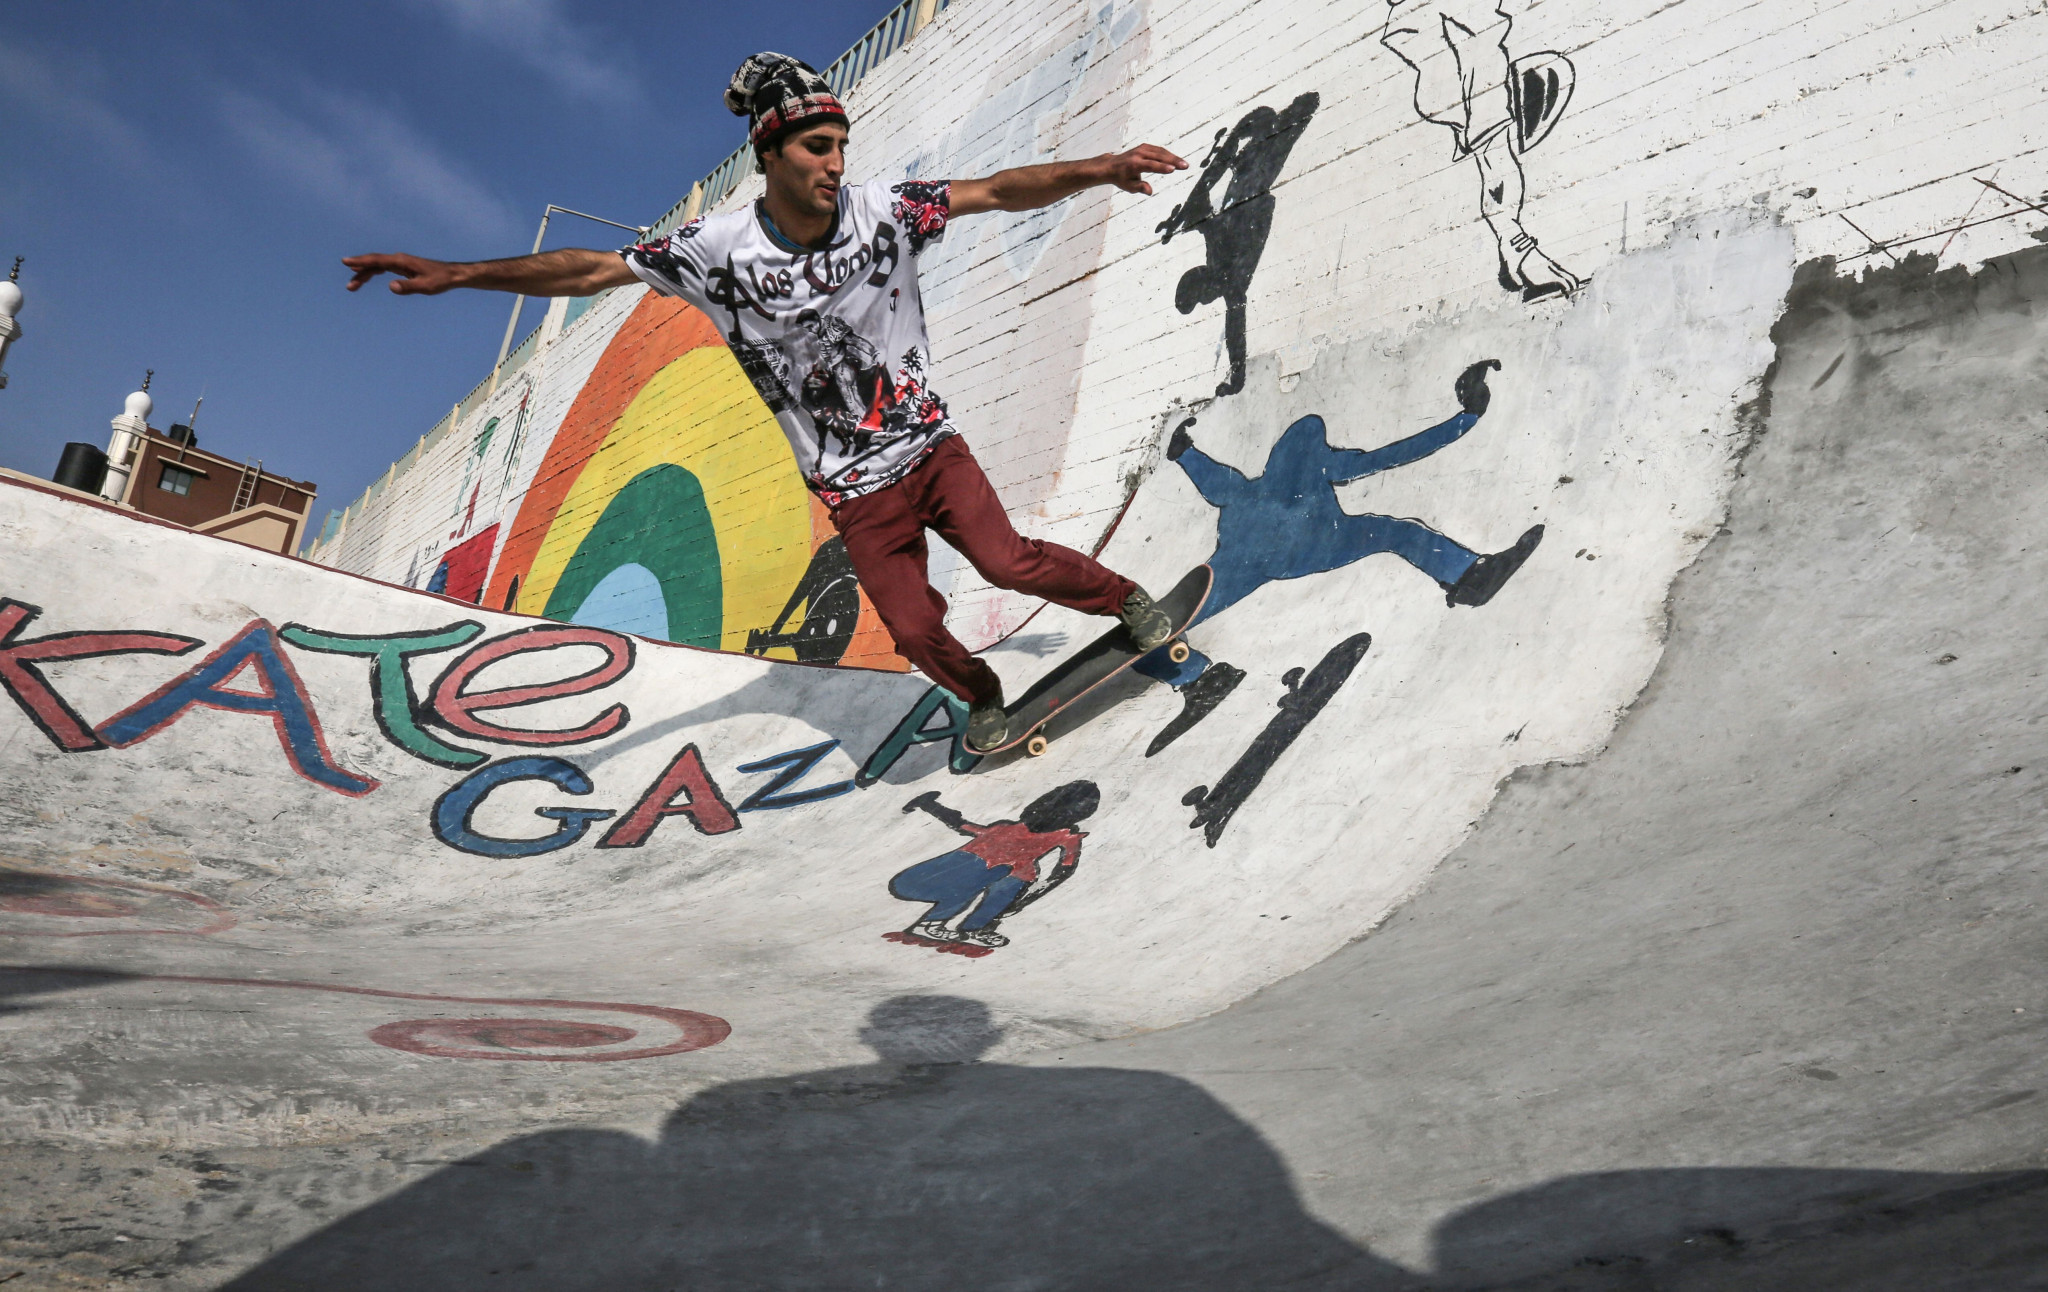 Skateboarding was due to be one of 39 sports contested at the Lima 2019 Pan American Games ©Getty Images